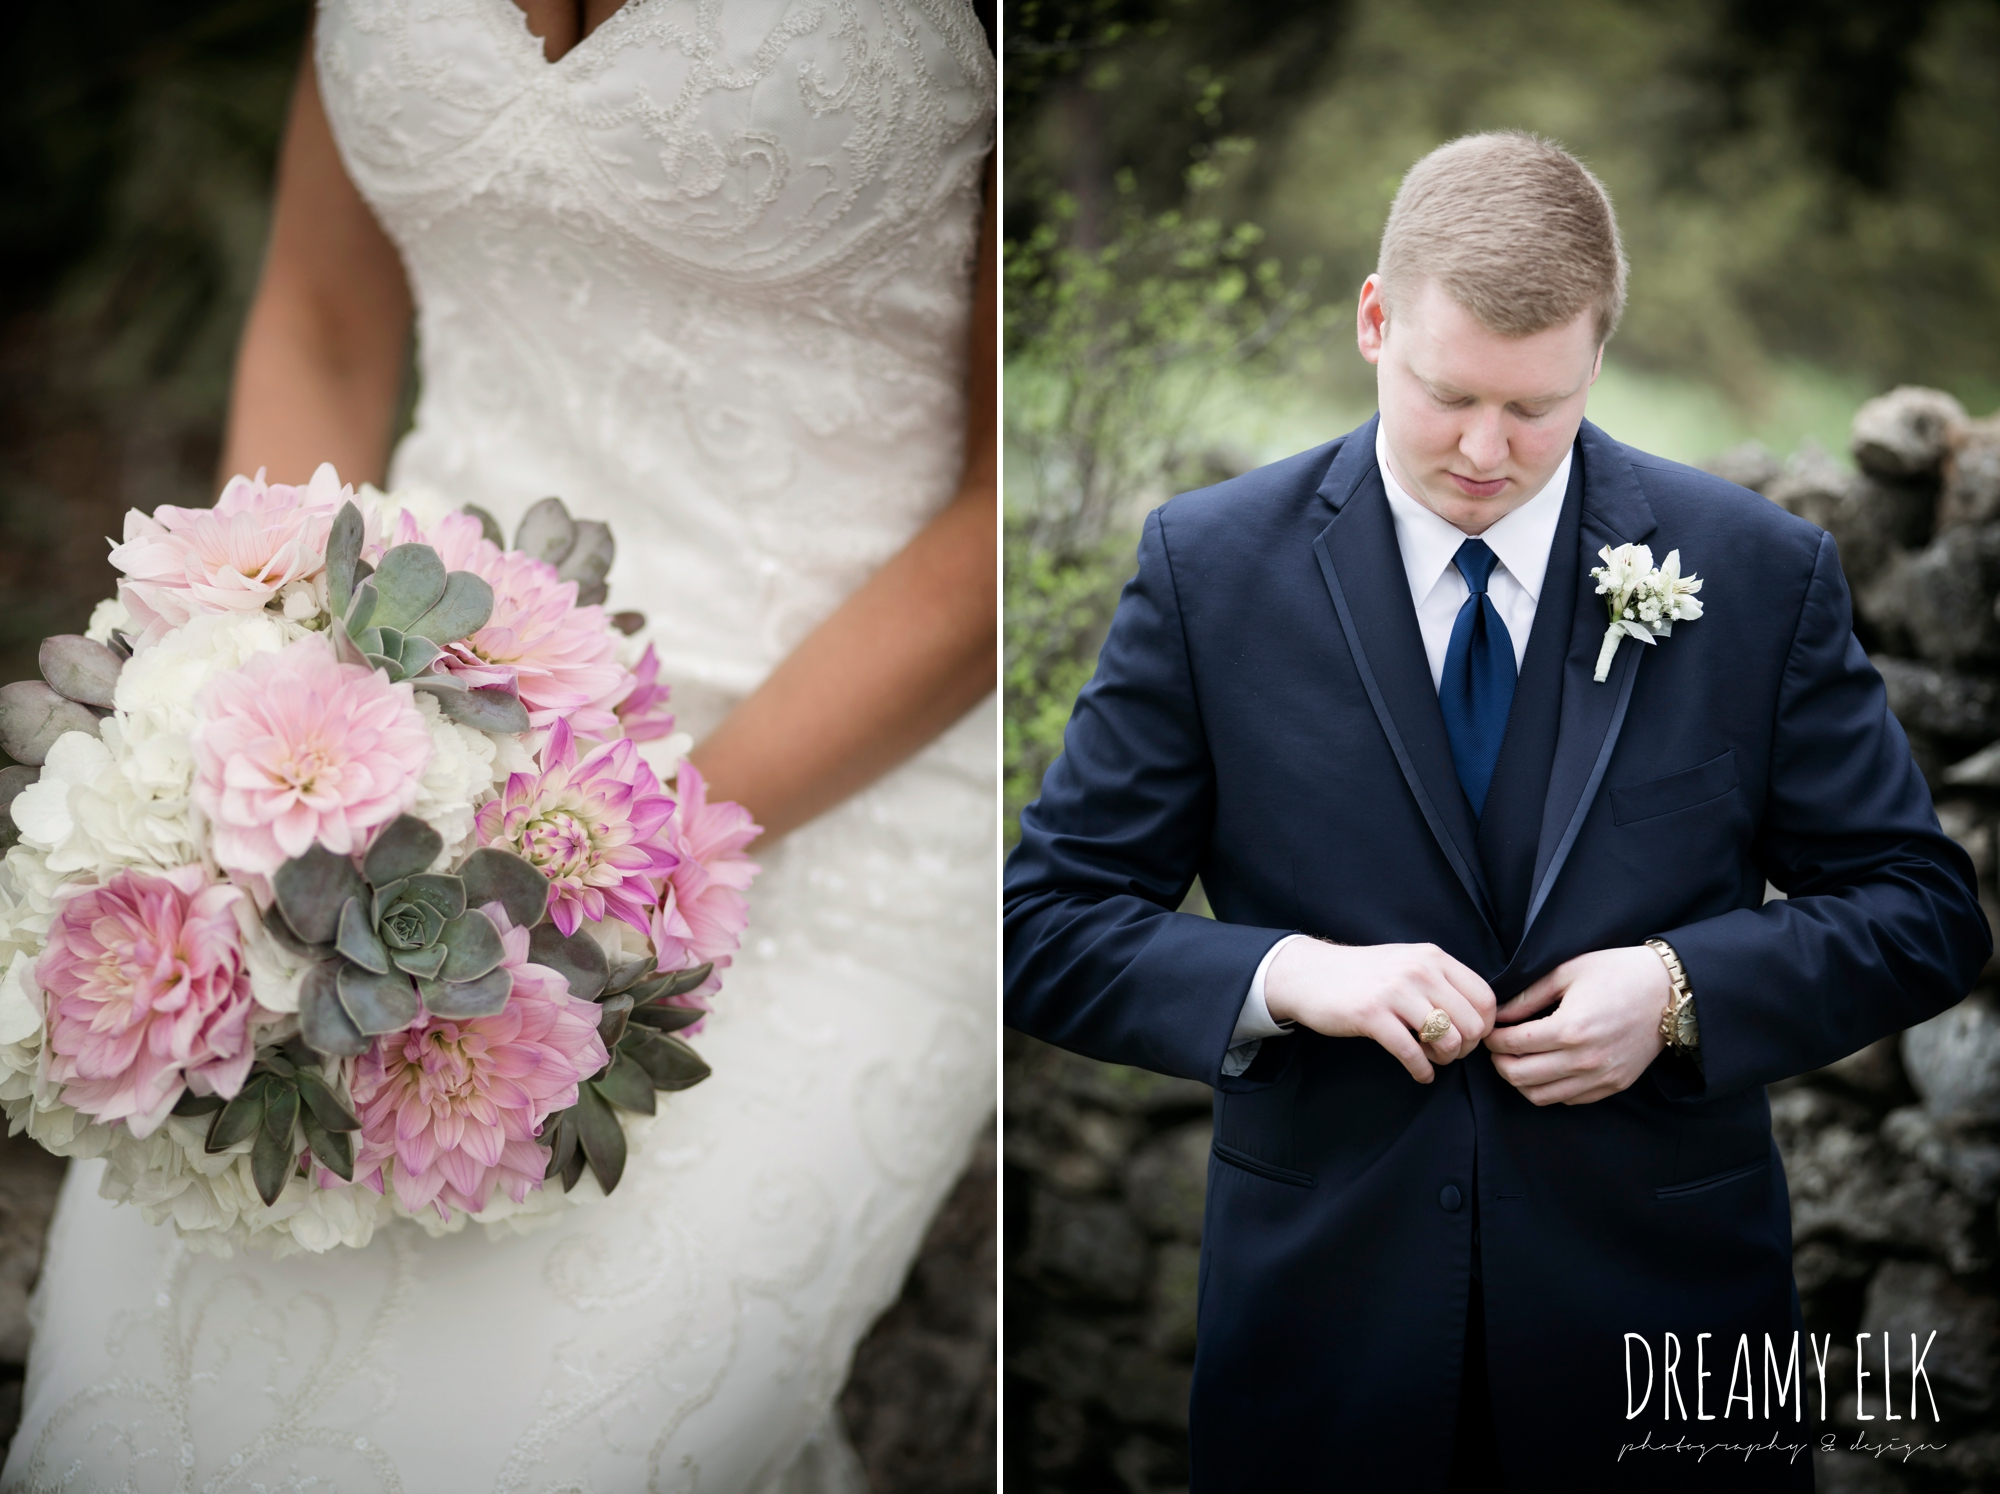 groom and groomsmen in navy suits, heb blooms, succulent and pink wedding bouquet, cloudy march wedding photo, canyon springs golf club wedding, san antonio, texas {dreamy elk photography and design}